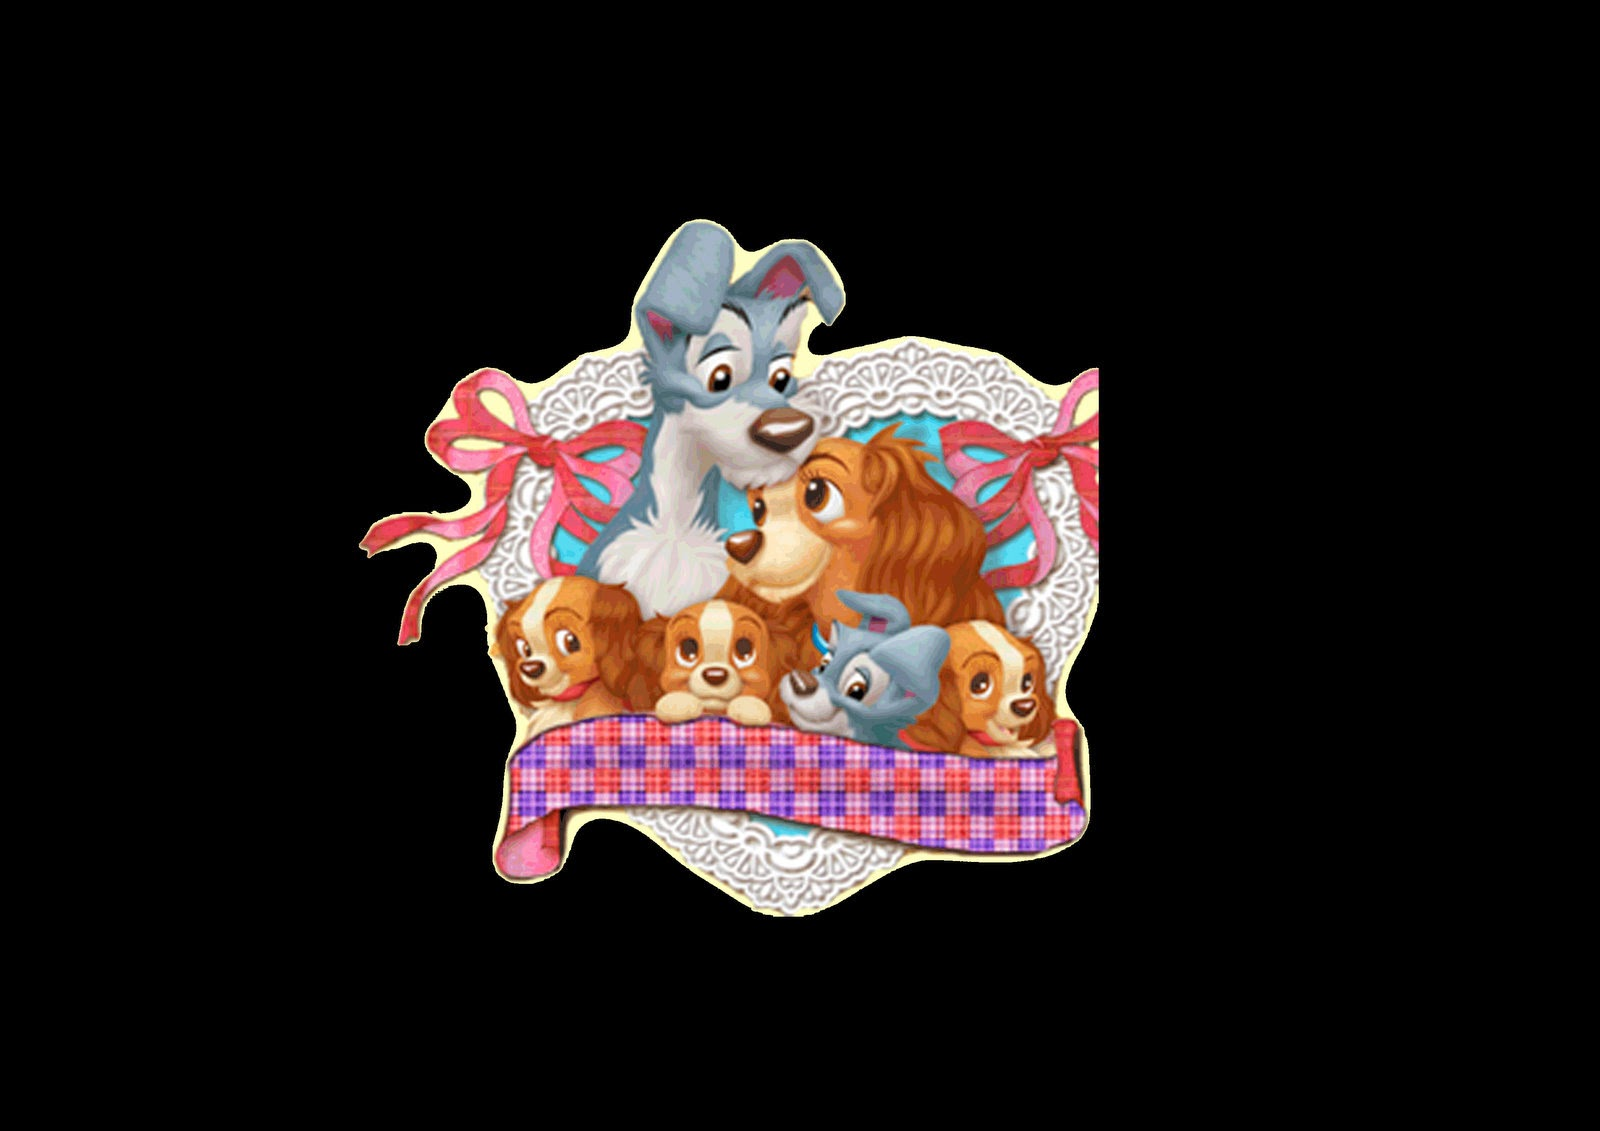 The Lady and the Tramp Images.